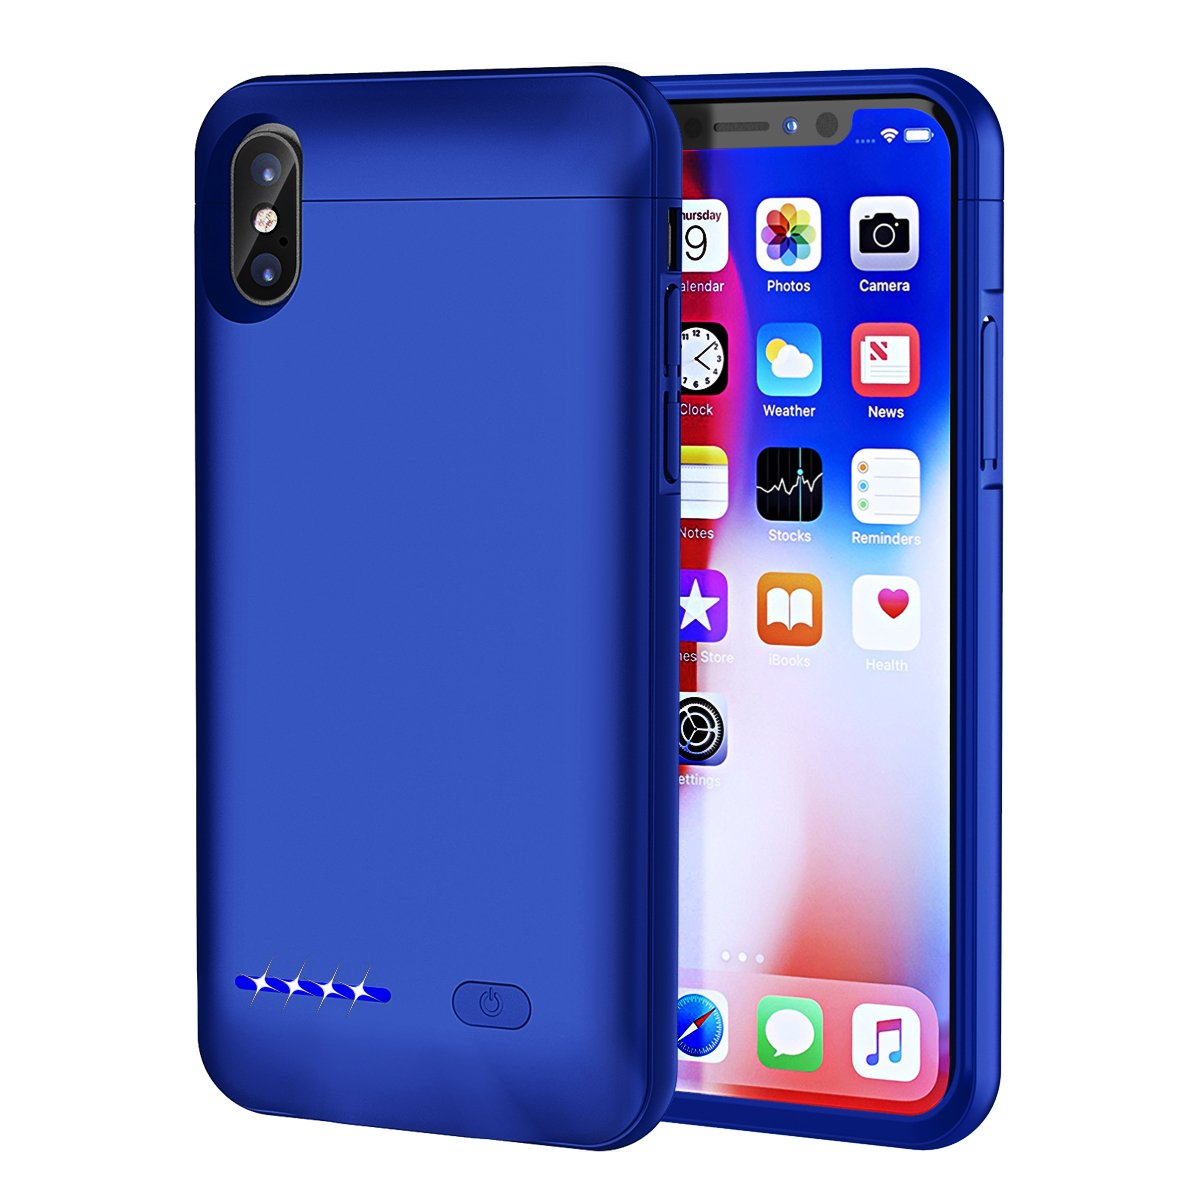 (Upgrade) iPhone X Battery Case,SUNWELL Slim Rechargeable External Battery 4000mAh Portable Charging Case for Apple iPhone X, iPhone 10 Charger Case,Battery Juice Pack with Magnatic Function (D-Blue)